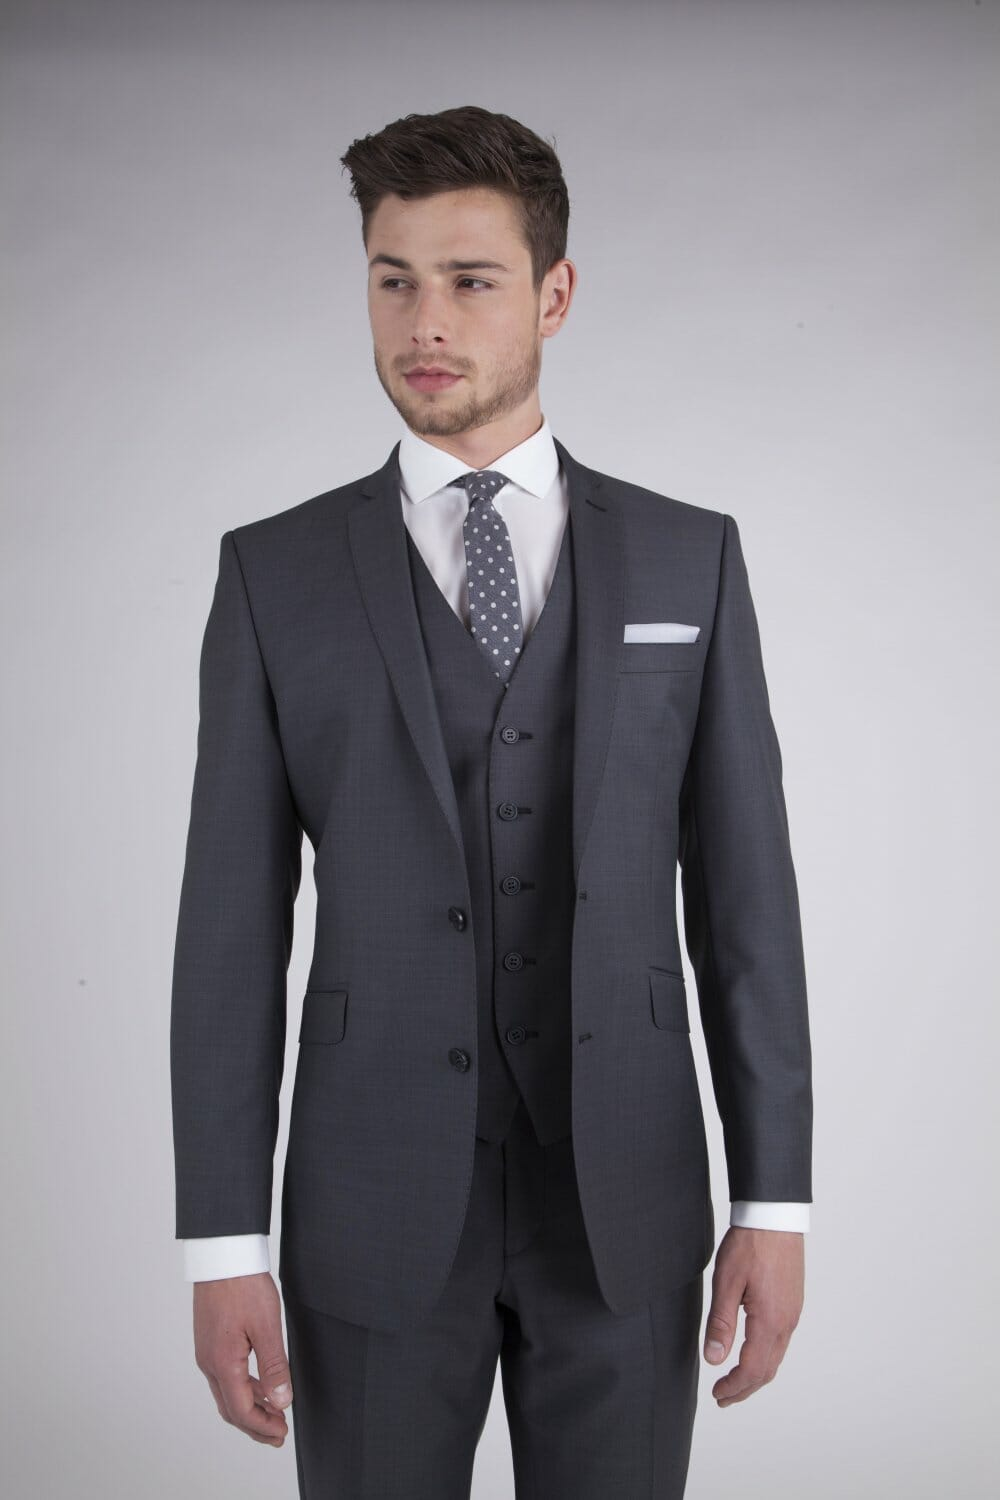 Charcoal Rental Suit Con Murphys Menswear Tailored Jacket With Twin Buttons